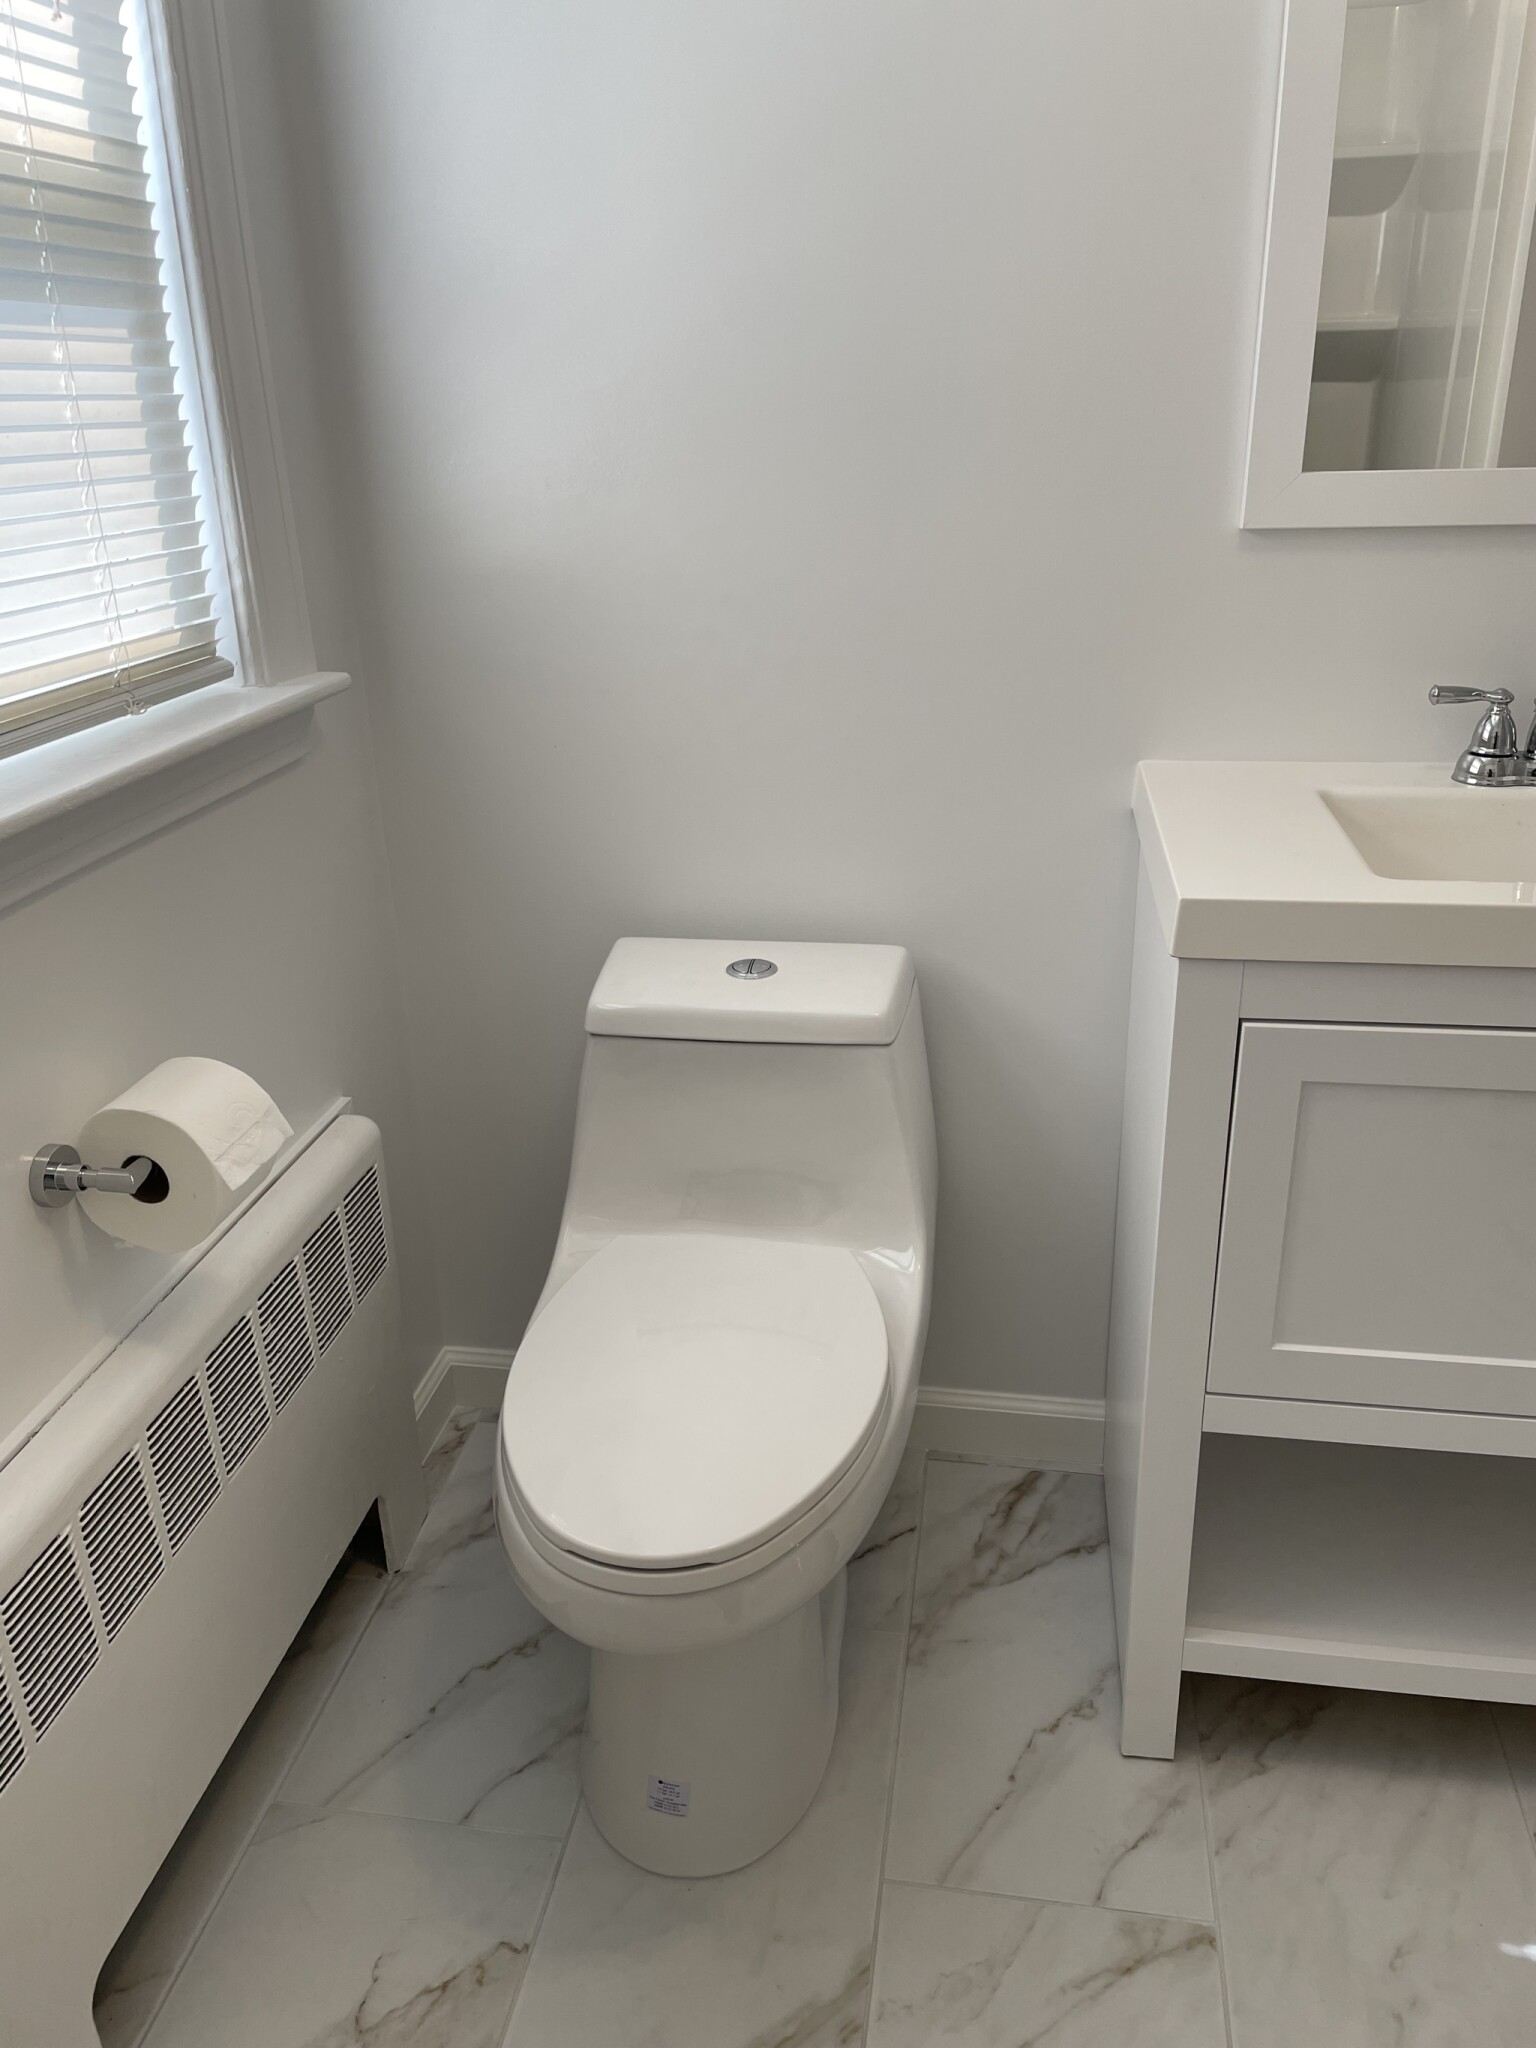 2 Beds, 1 Bath apartment in Newton for $1,800